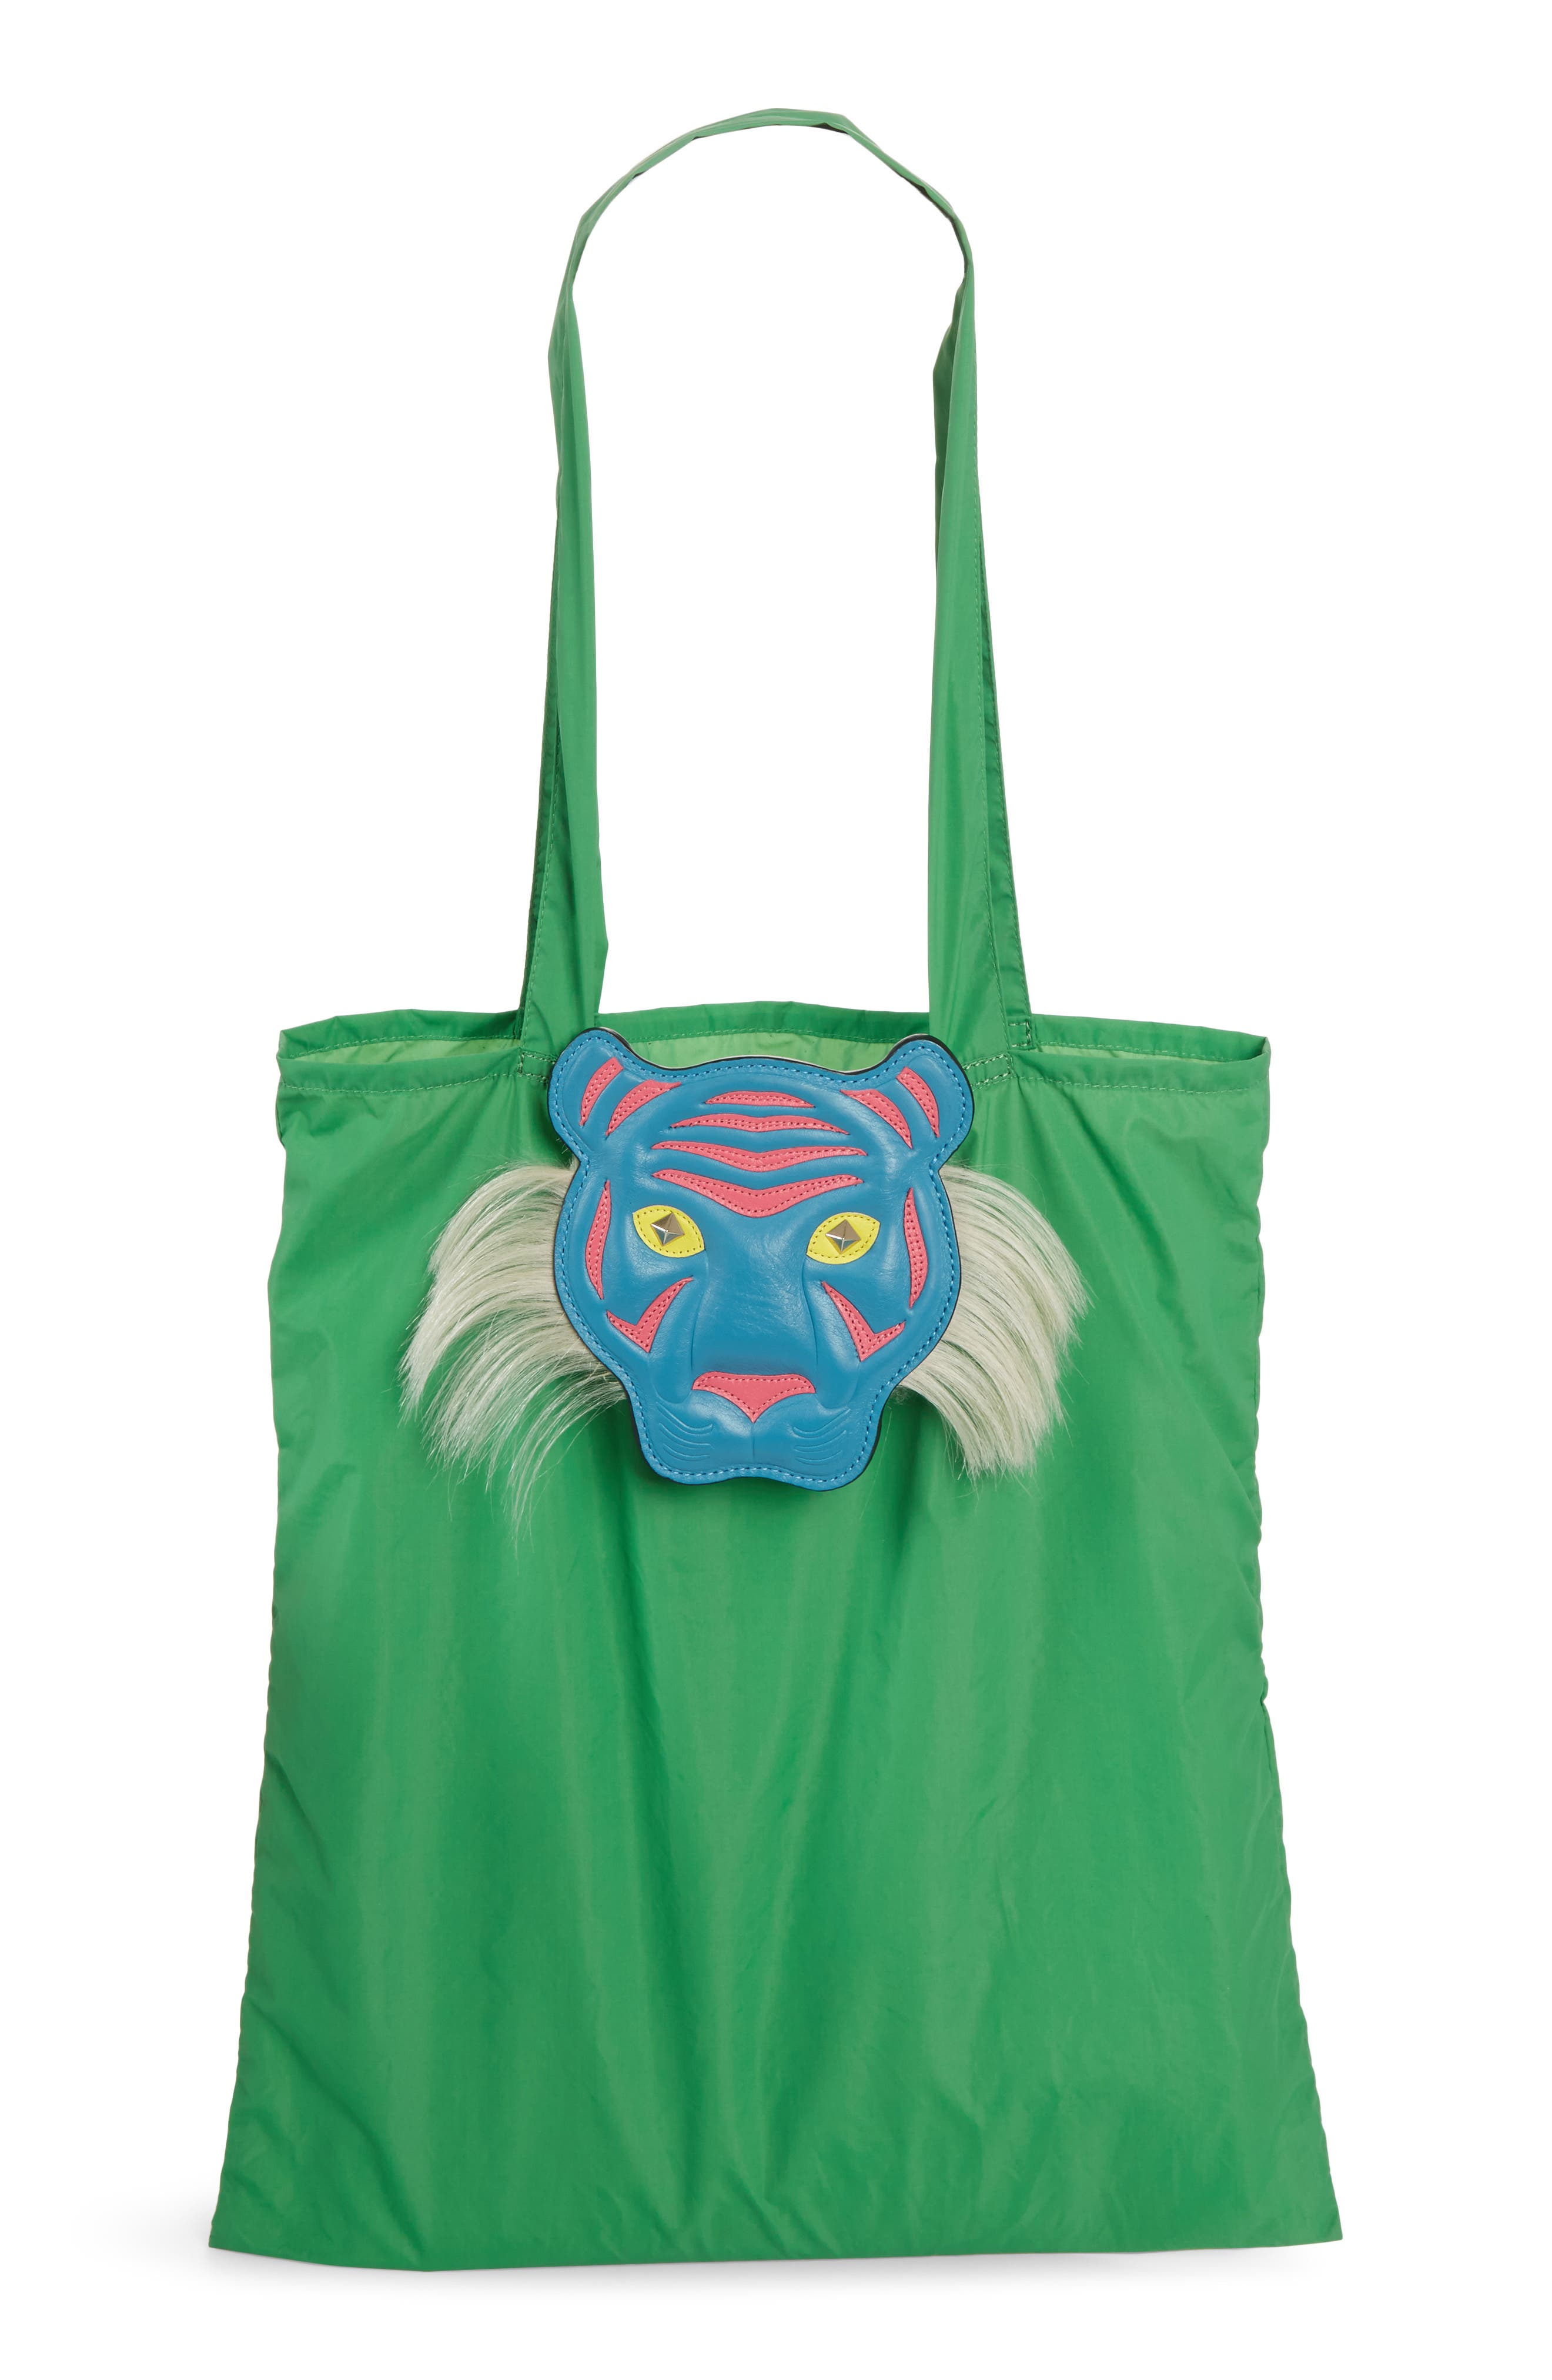 Nylon Tote with Genuine Goat Fur & Leather Bag Charm,                         Main,                         color, Green Multi